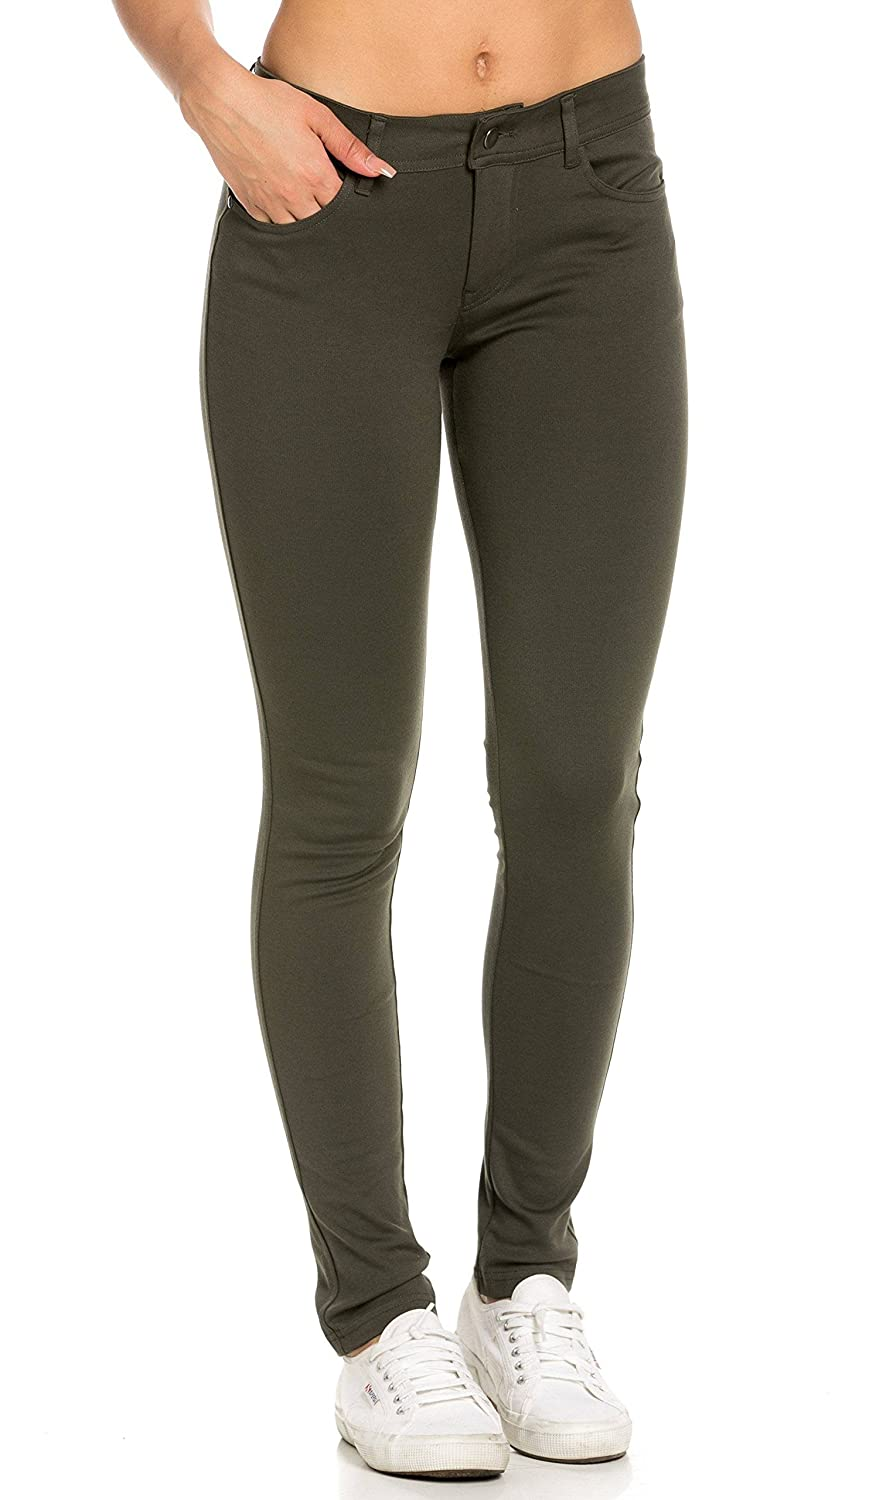 Classic Stretch Knit Skinny Pants in Olive (Plus SOHO GLAM Sohogirl.com ACLSKSPNTOLV